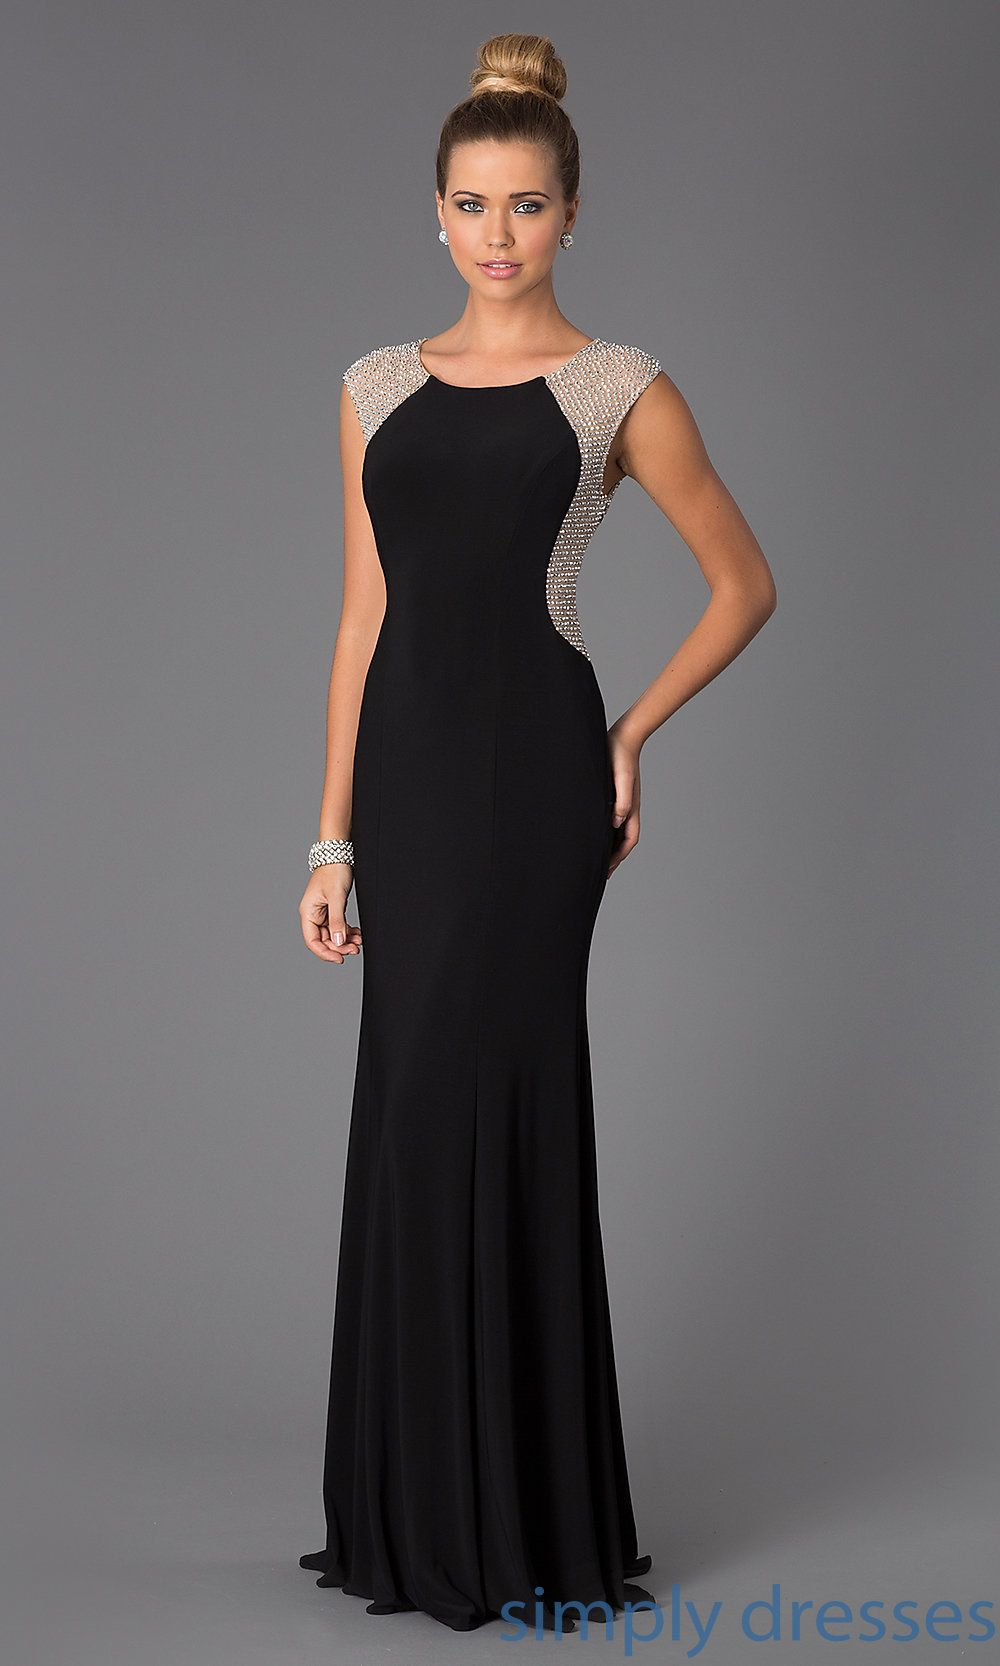 Xscape long black gown with sheer metallic boucle dressess